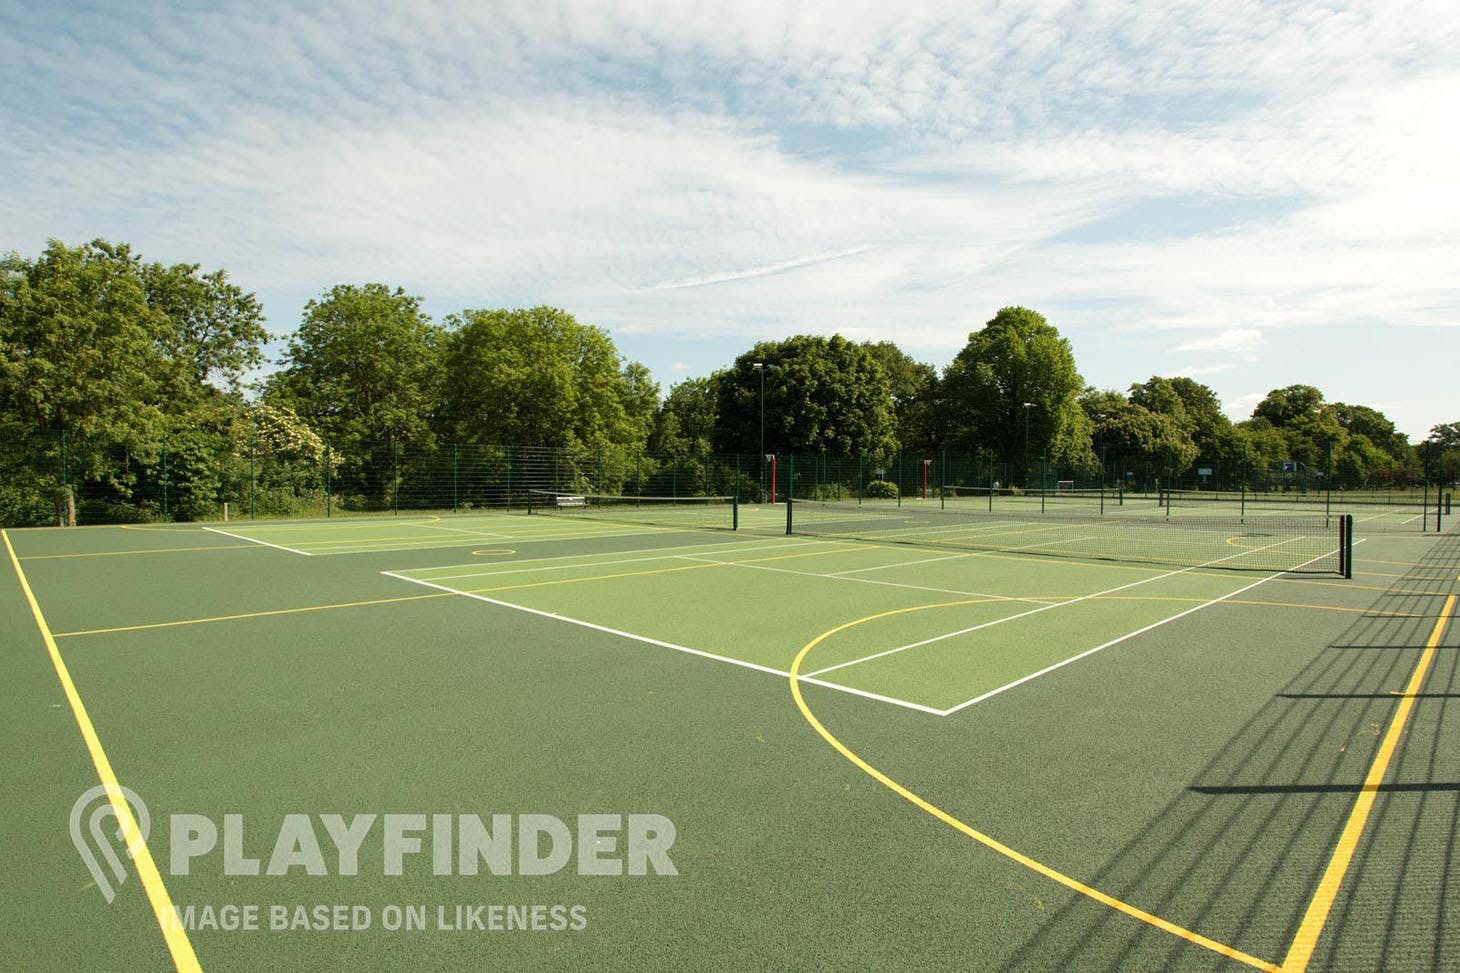 Firs Farm Tennis Outdoor | Hard (macadam) tennis court